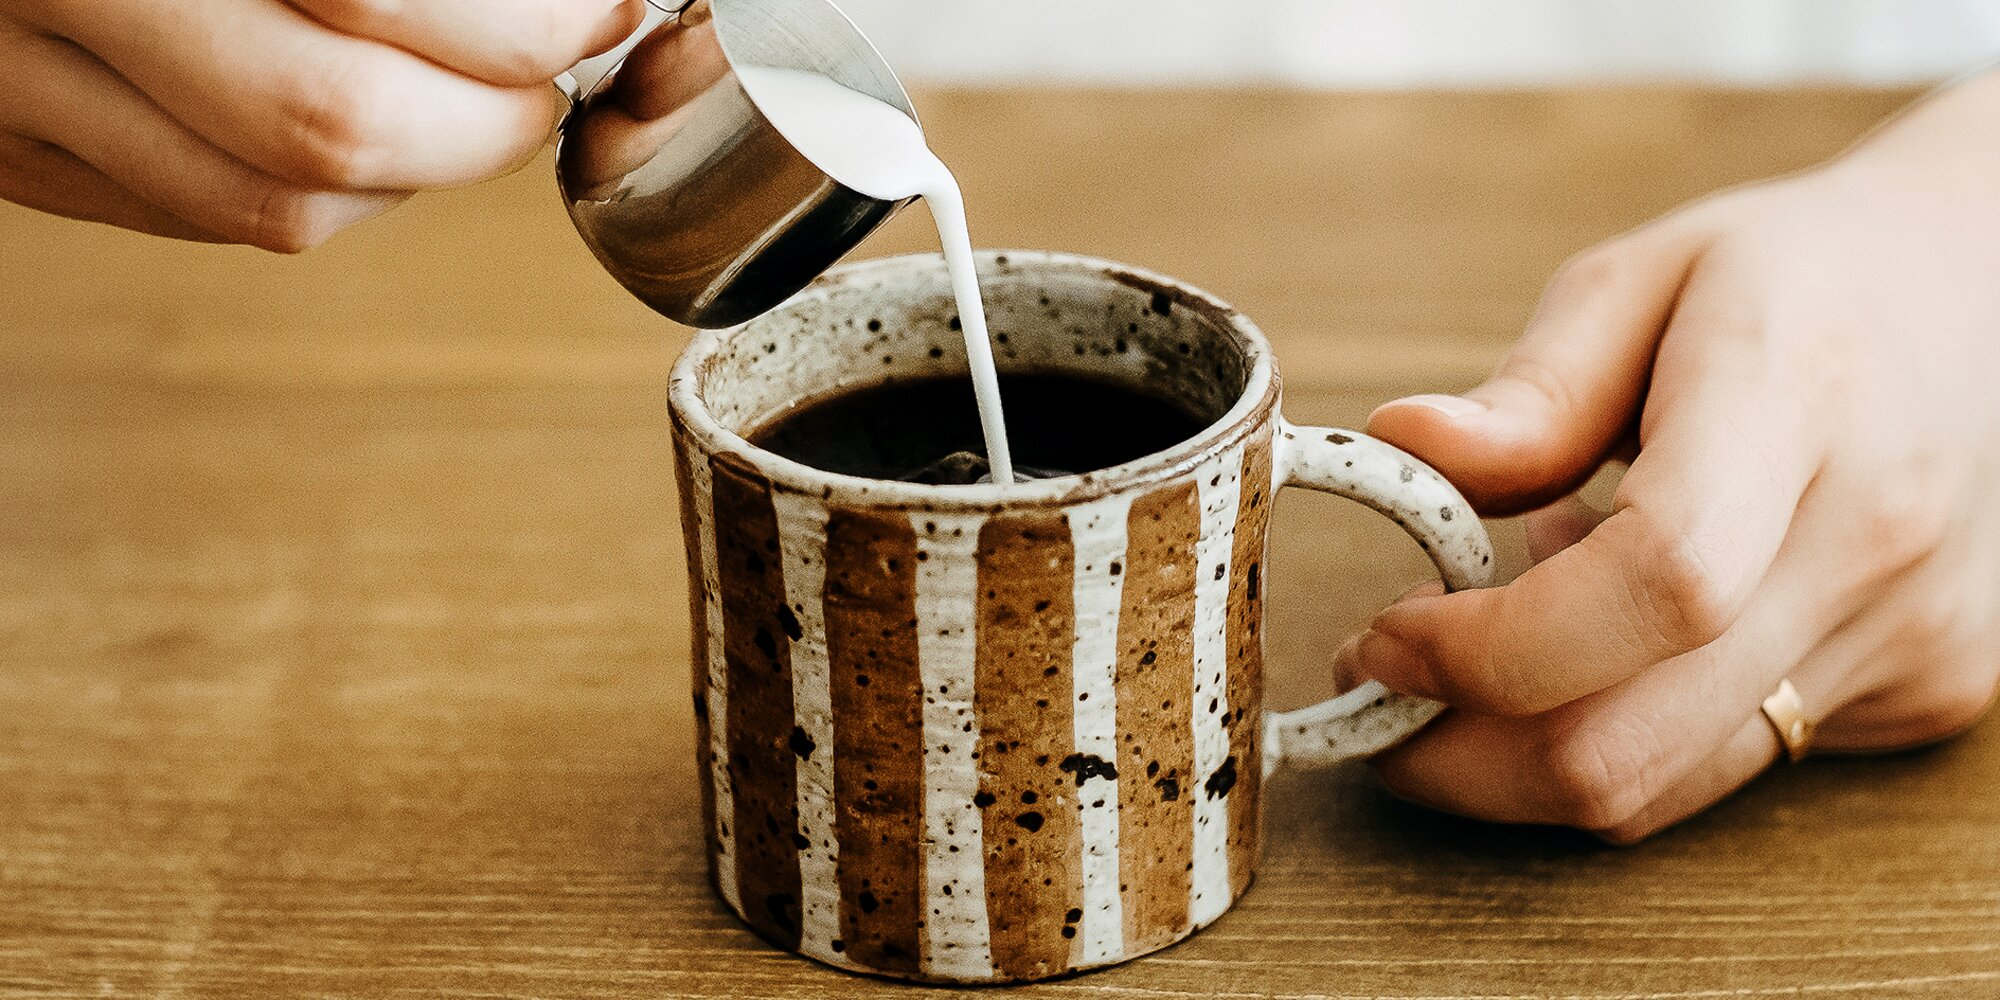 The 5 Best and 6 Worst Mix-Ins to Add to Your Coffee, According to Dietitians